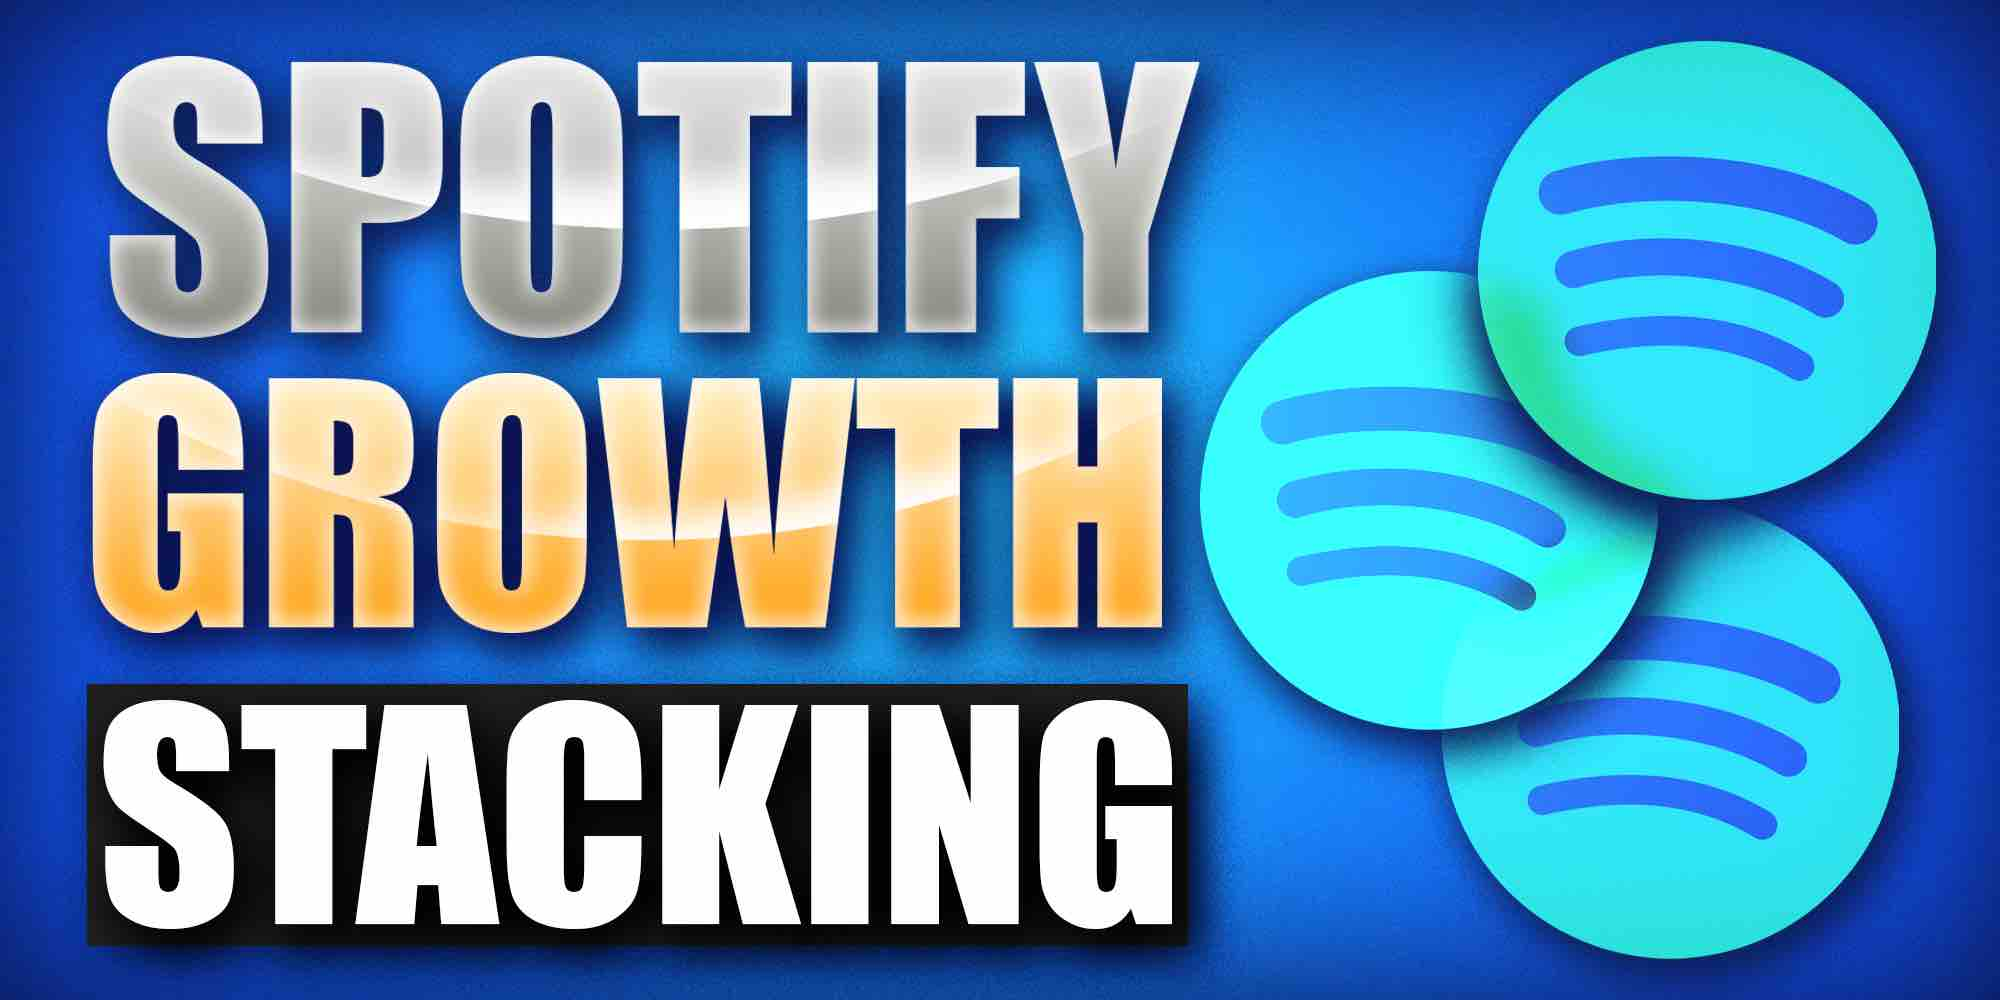 Spotify growth stacking